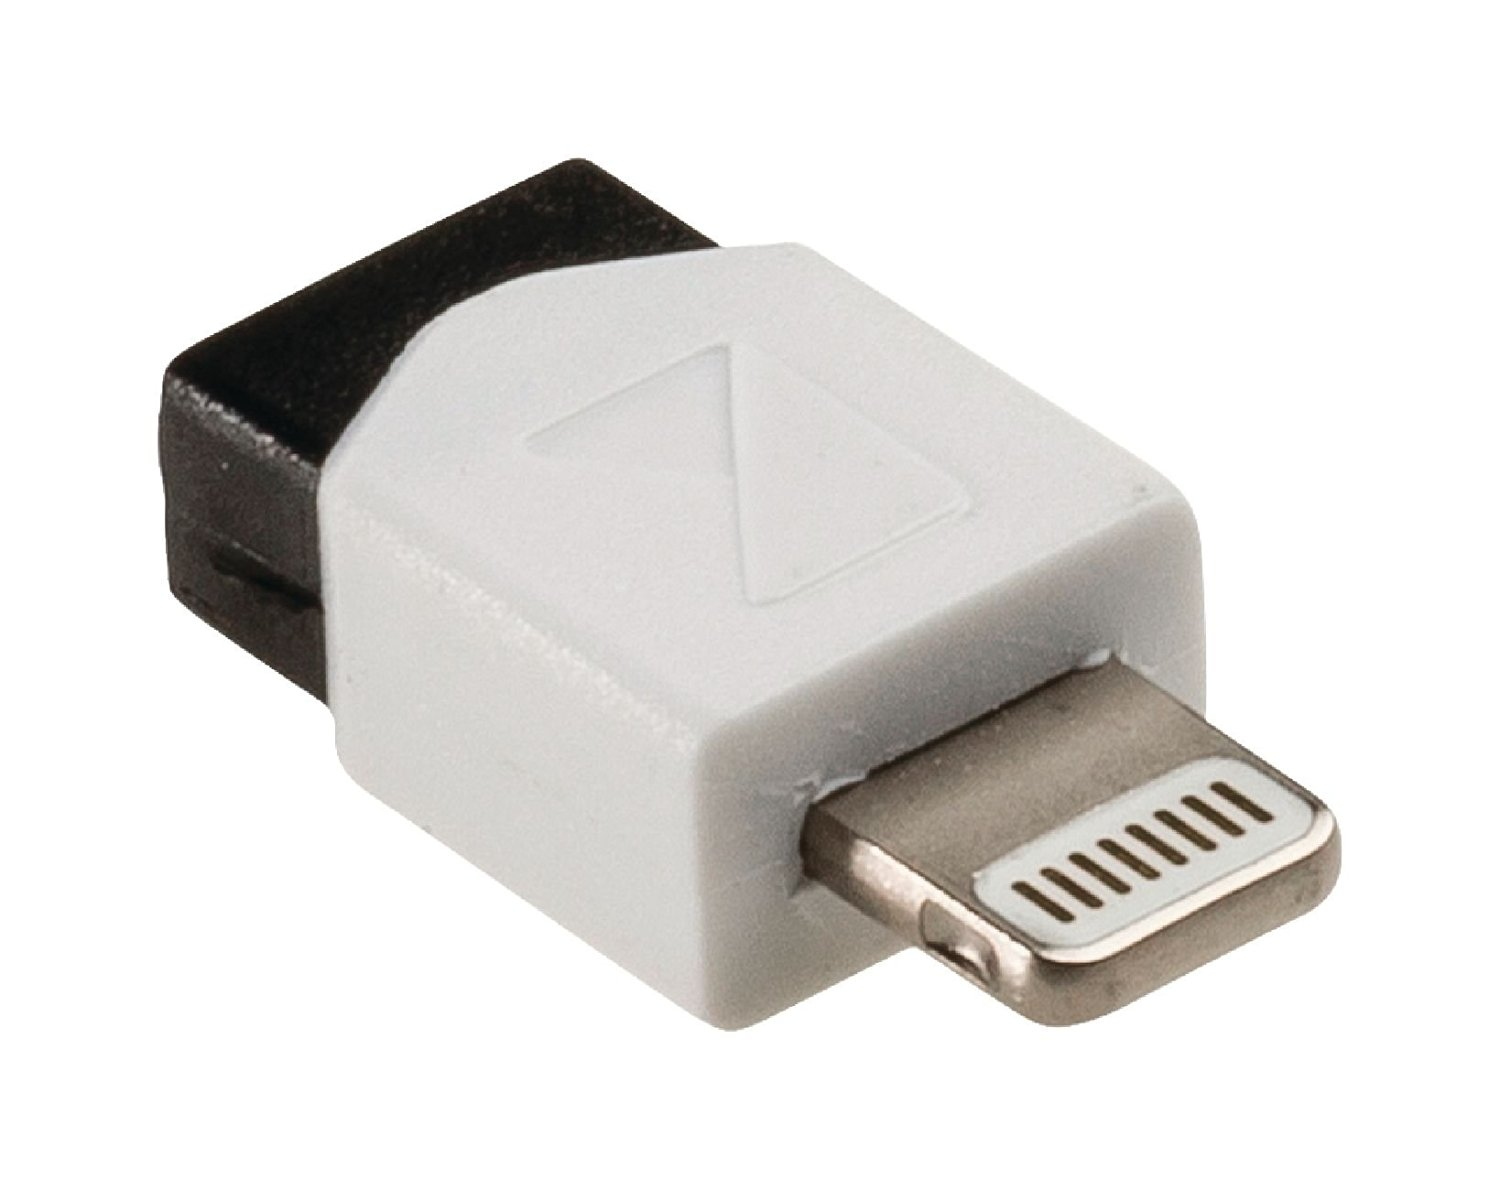 Konig Sync and charge adapter 8-pin Lightning male - USB 2.0 Micro B female 1 pc white [KNM39901W]